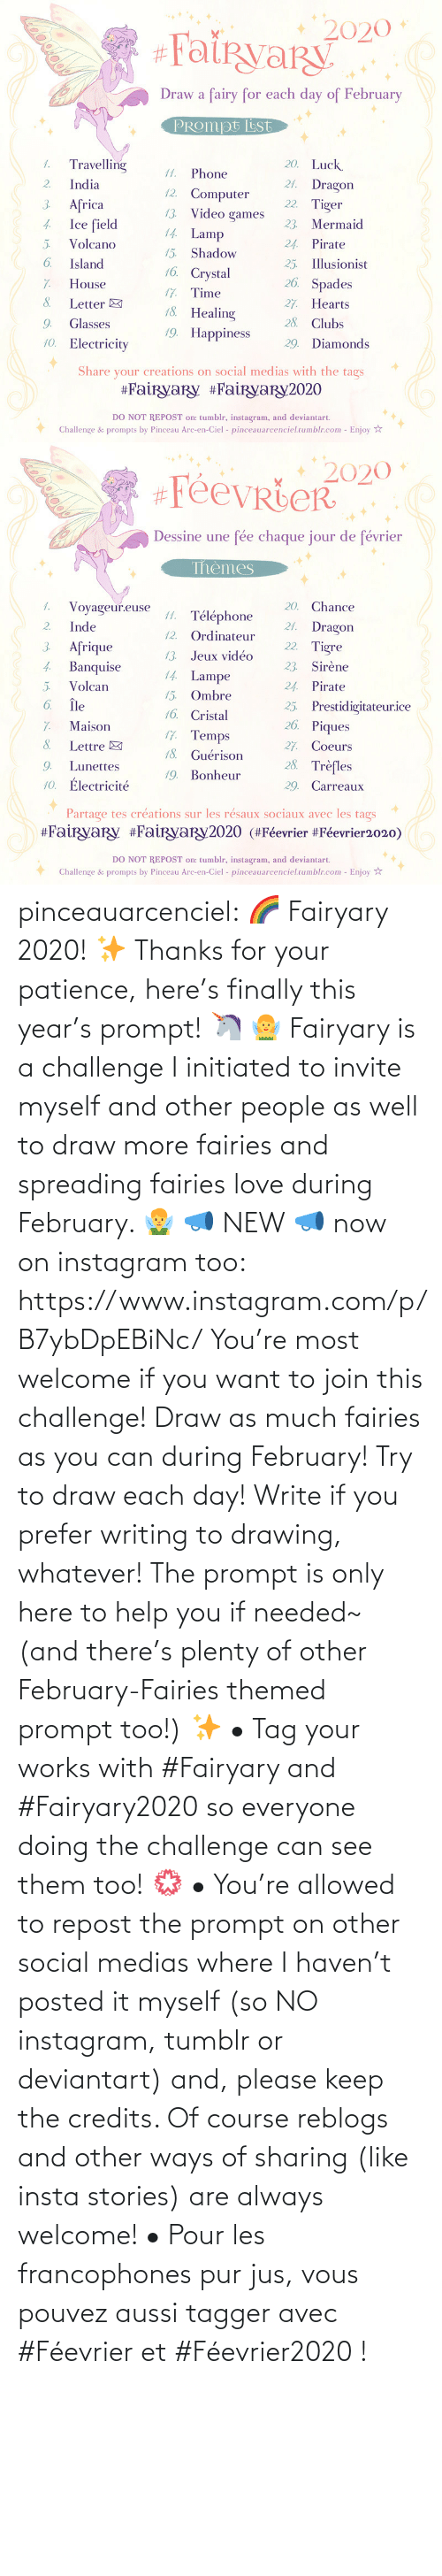 insta: pinceauarcenciel: 🌈 Fairyary 2020! ✨ Thanks for your patience, here's finally this year's prompt! 🦄 🧚‍♀️ Fairyary is a challenge I initiated to invite myself and other people as well to draw more fairies and spreading fairies love during February. 🧚‍♂️ 📣 NEW 📣 now on instagram too: https://www.instagram.com/p/B7ybDpEBiNc/ You're most welcome if you want to join this challenge! Draw as much fairies as you can during February! Try to draw each day! Write if you prefer writing to drawing, whatever! The prompt is only here to help you if needed~ (and there's plenty of other February-Fairies themed prompt too!) ✨ • Tag your works with #Fairyary and #Fairyary2020 so everyone doing the challenge can see them too! 💮 • You're allowed to repost the prompt on other social medias where I haven't posted it myself (so NO instagram, tumblr or deviantart) and, please keep the credits. Of course reblogs and other ways of sharing (like insta stories) are always welcome!